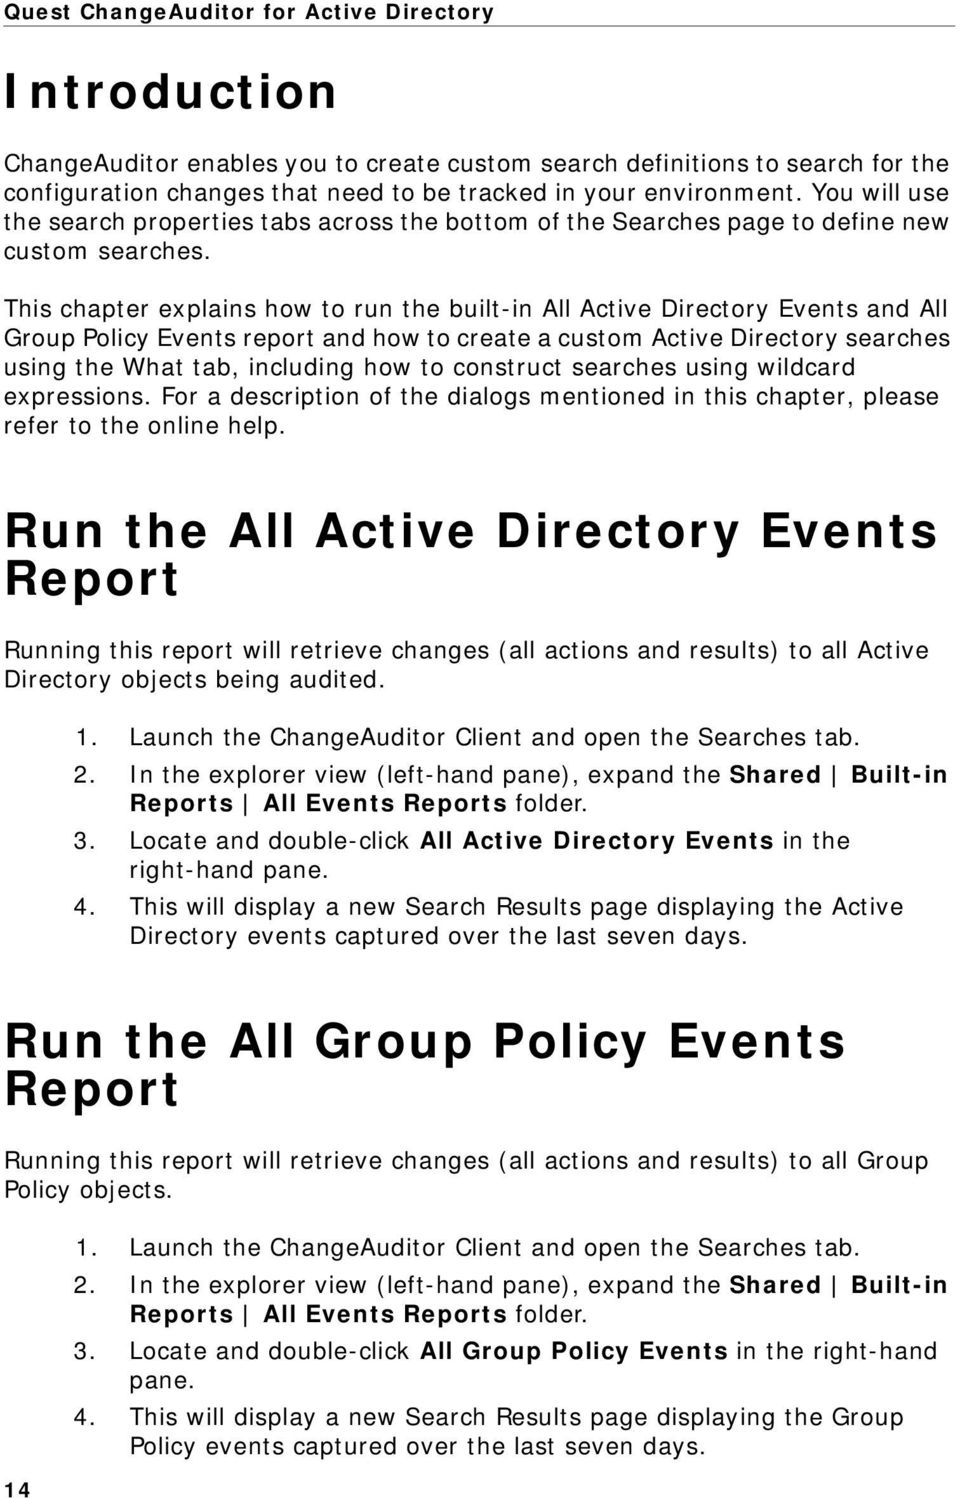 This chapter explains how to run the built-in All Active Directory Events and All Group Policy Events report and how to create a custom Active Directory searches using the What tab, including how to